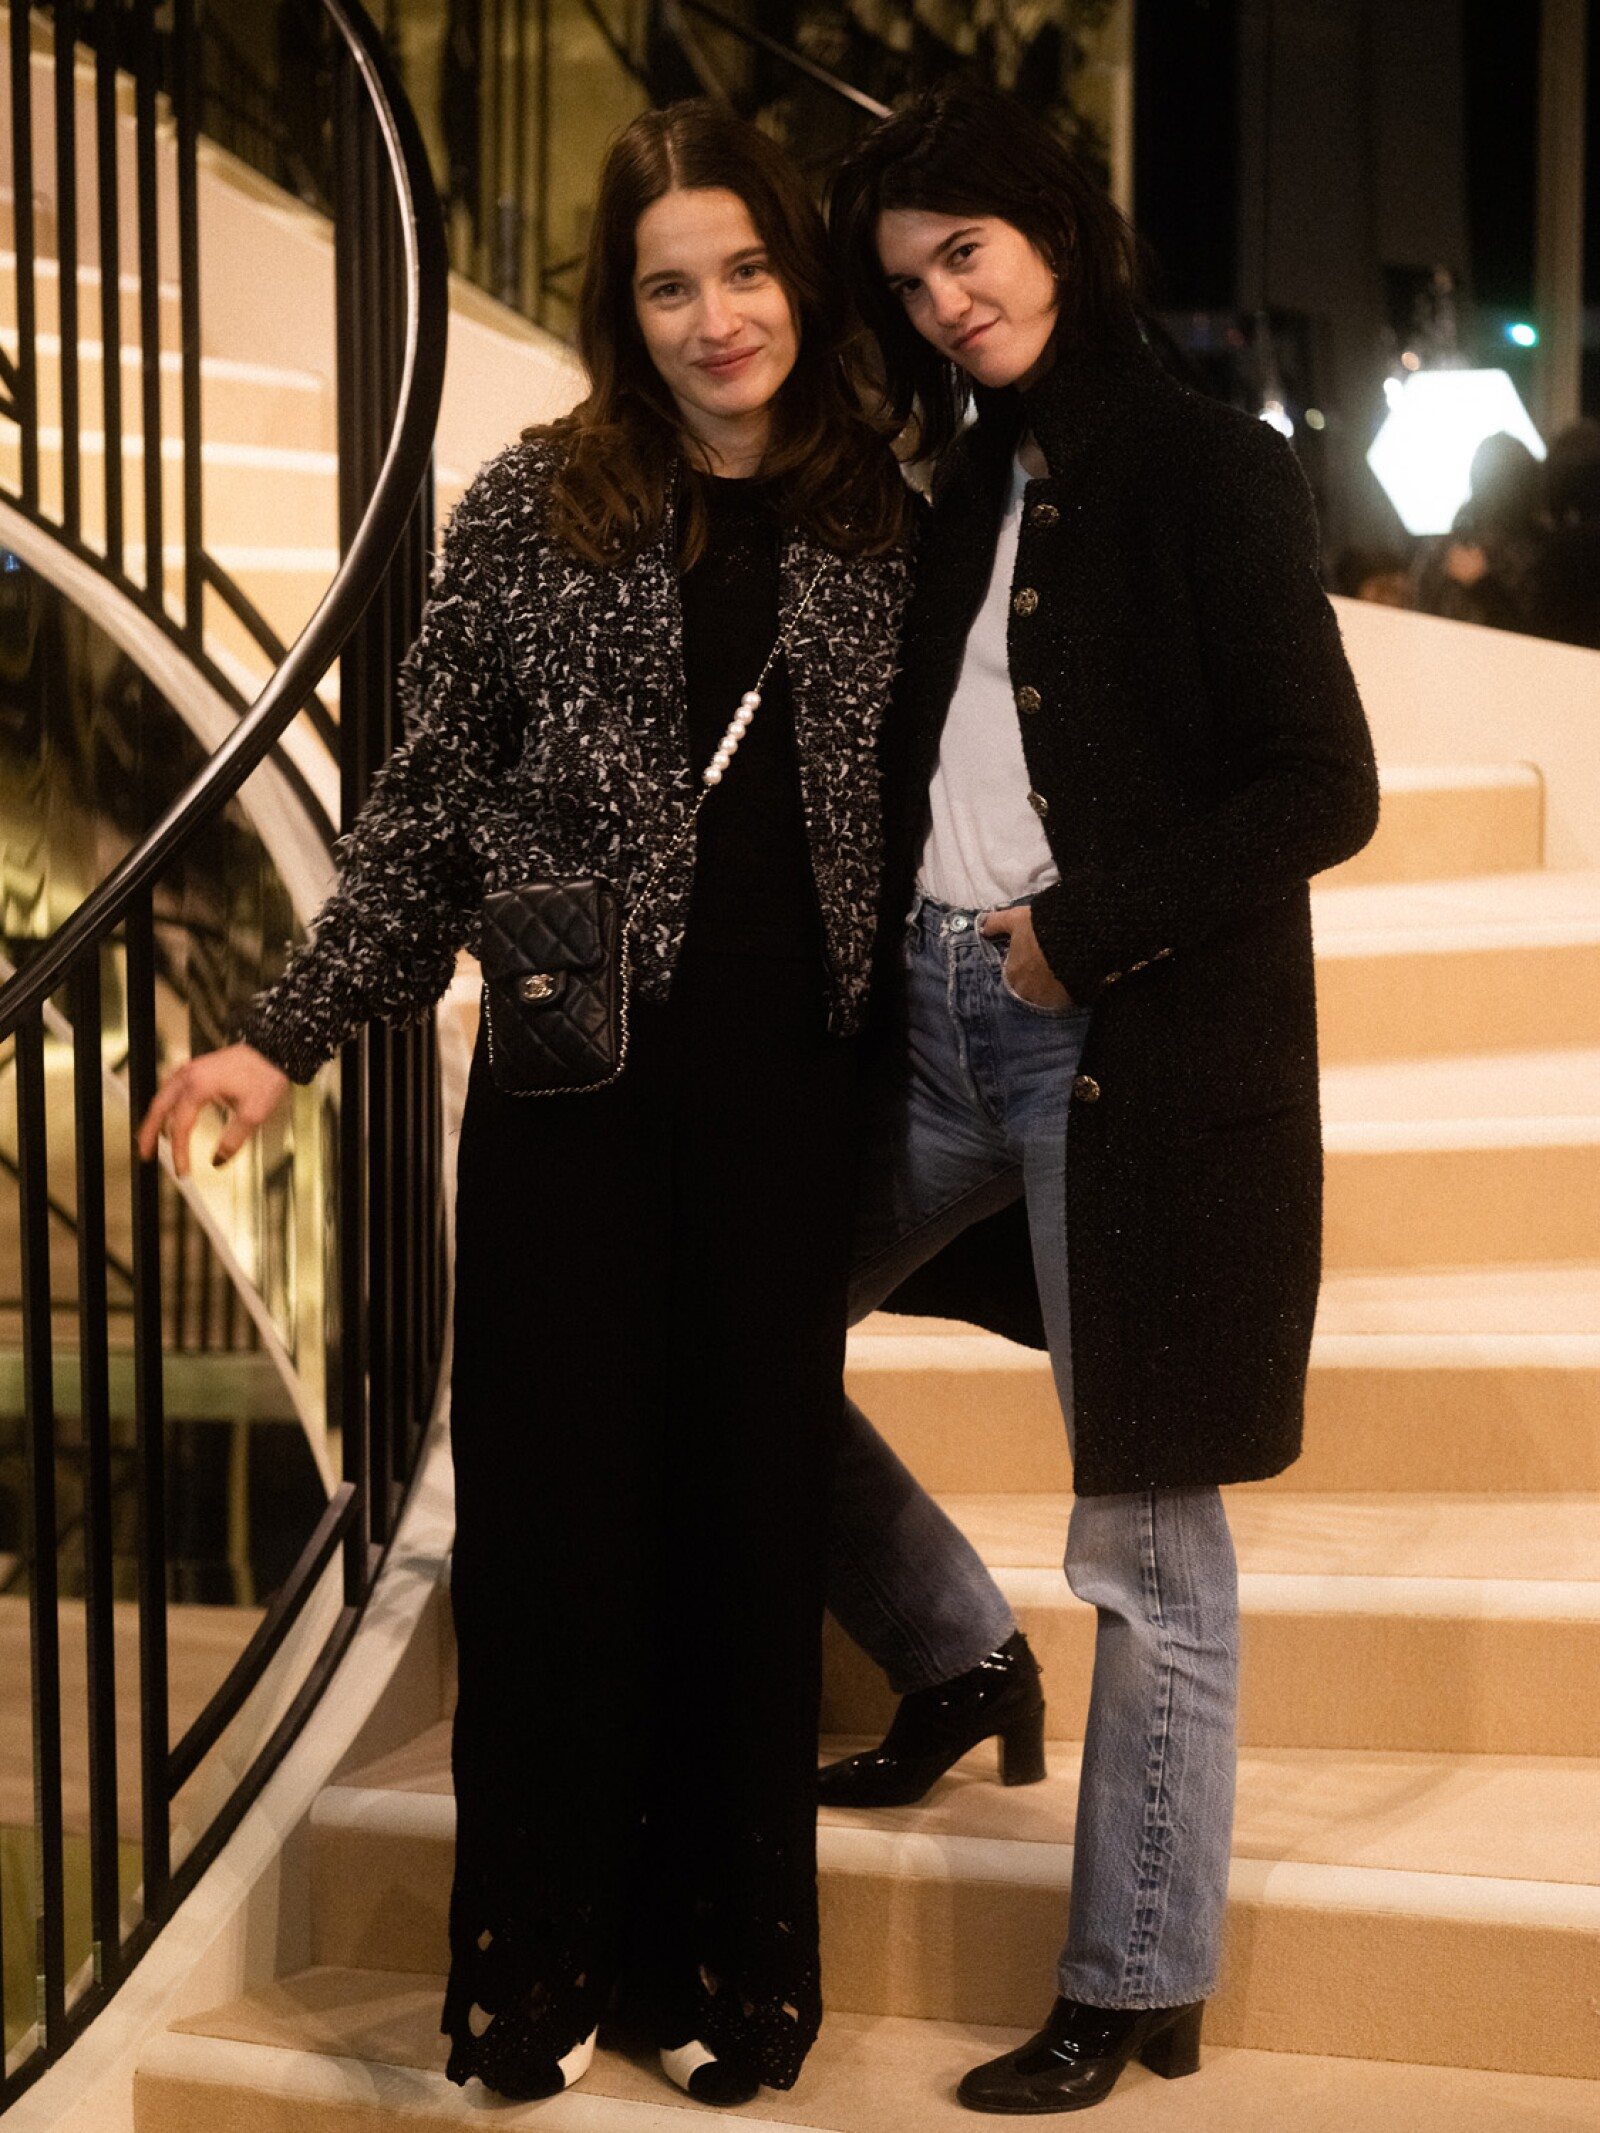 45_Suzanne_LINDON_Rebecca_MARDER_CHANEL_Metiers_d_art_Show_2019_20.jpg